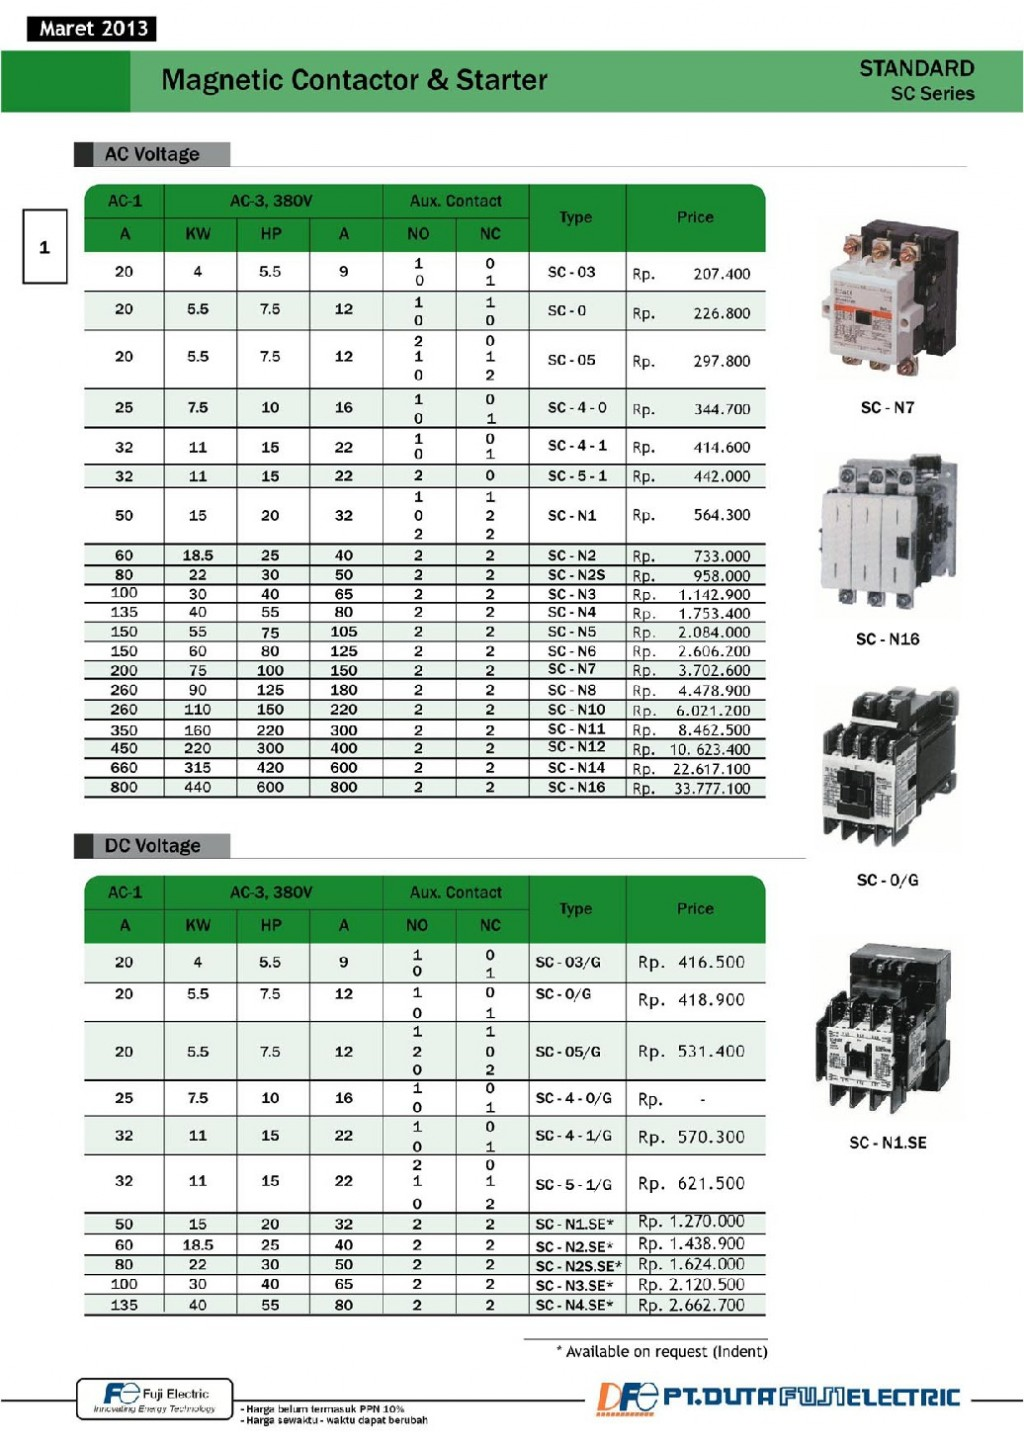 ACCESSORIES PANEL & BOX PANEL, PRICELIST KOMPONEN FUJI, Magnetic Contactor & Starter - Standard (SC Series)